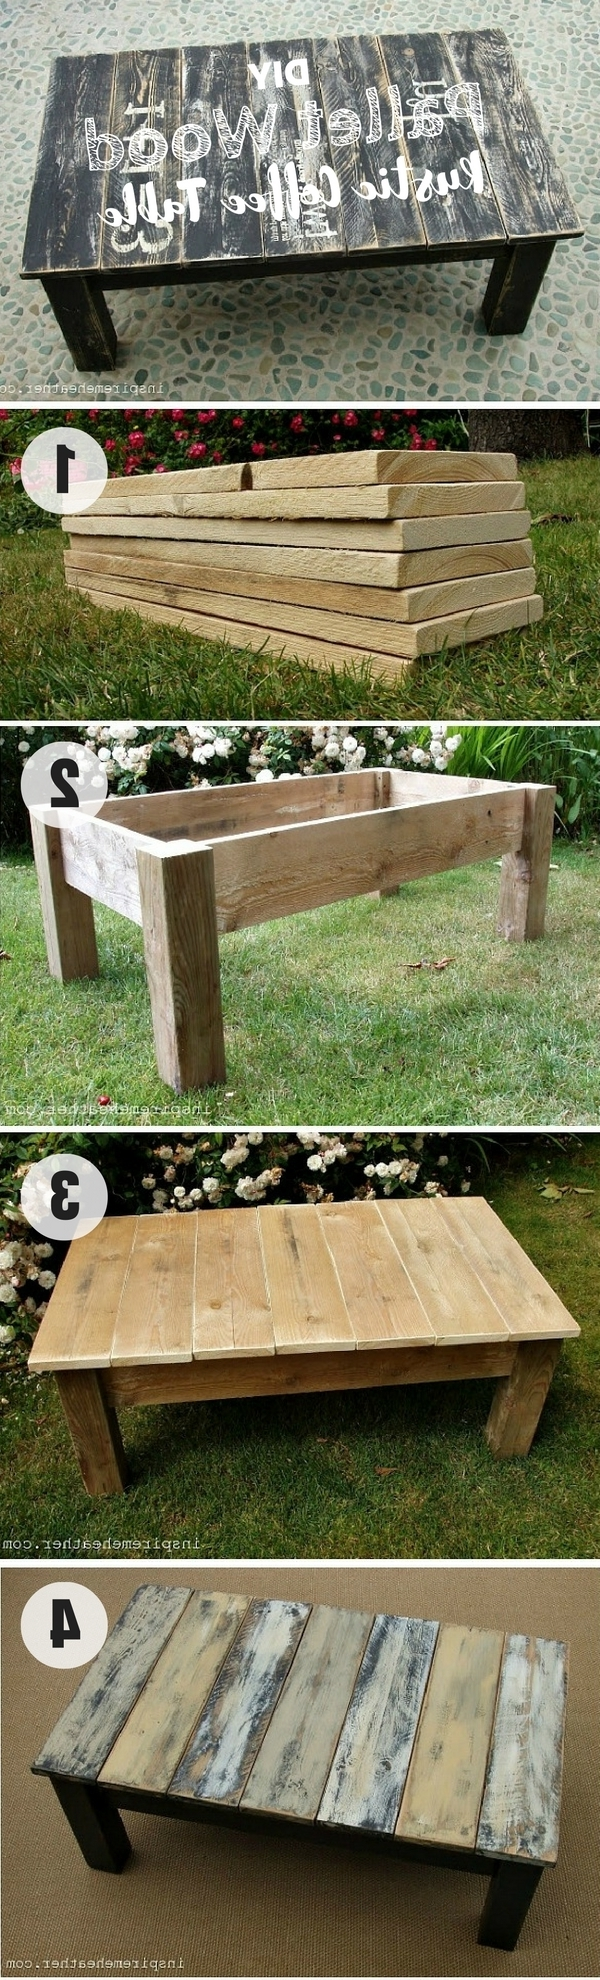 Diy Coffee Table – 40 Easy Ideas You Can Make On A Budget In Latest Jelly Bean Coffee Tables (View 5 of 20)